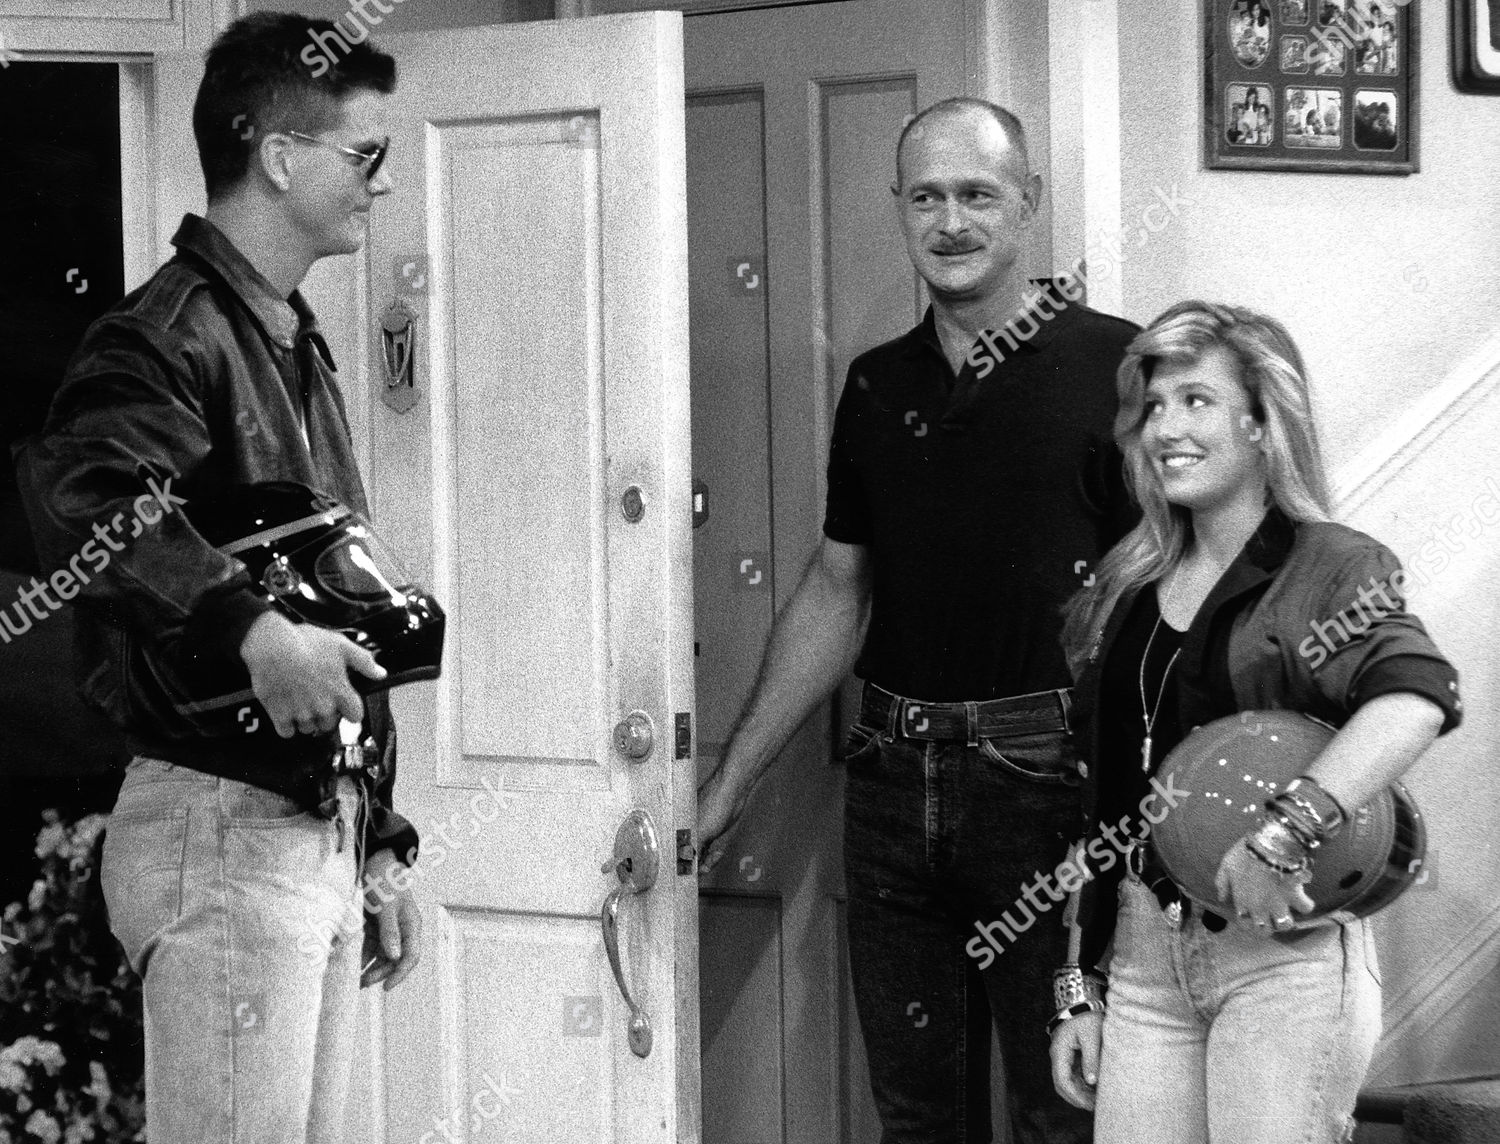 Gerald Mcraney Marisa Ryan Editorial Stock Photo Stock Image Shutterstock This list includes all of the major dad main actors and actresses, so if they are an integral part of the show you'll find them below. https www shutterstock com editorial image editorial major dad 19891993 5876773d